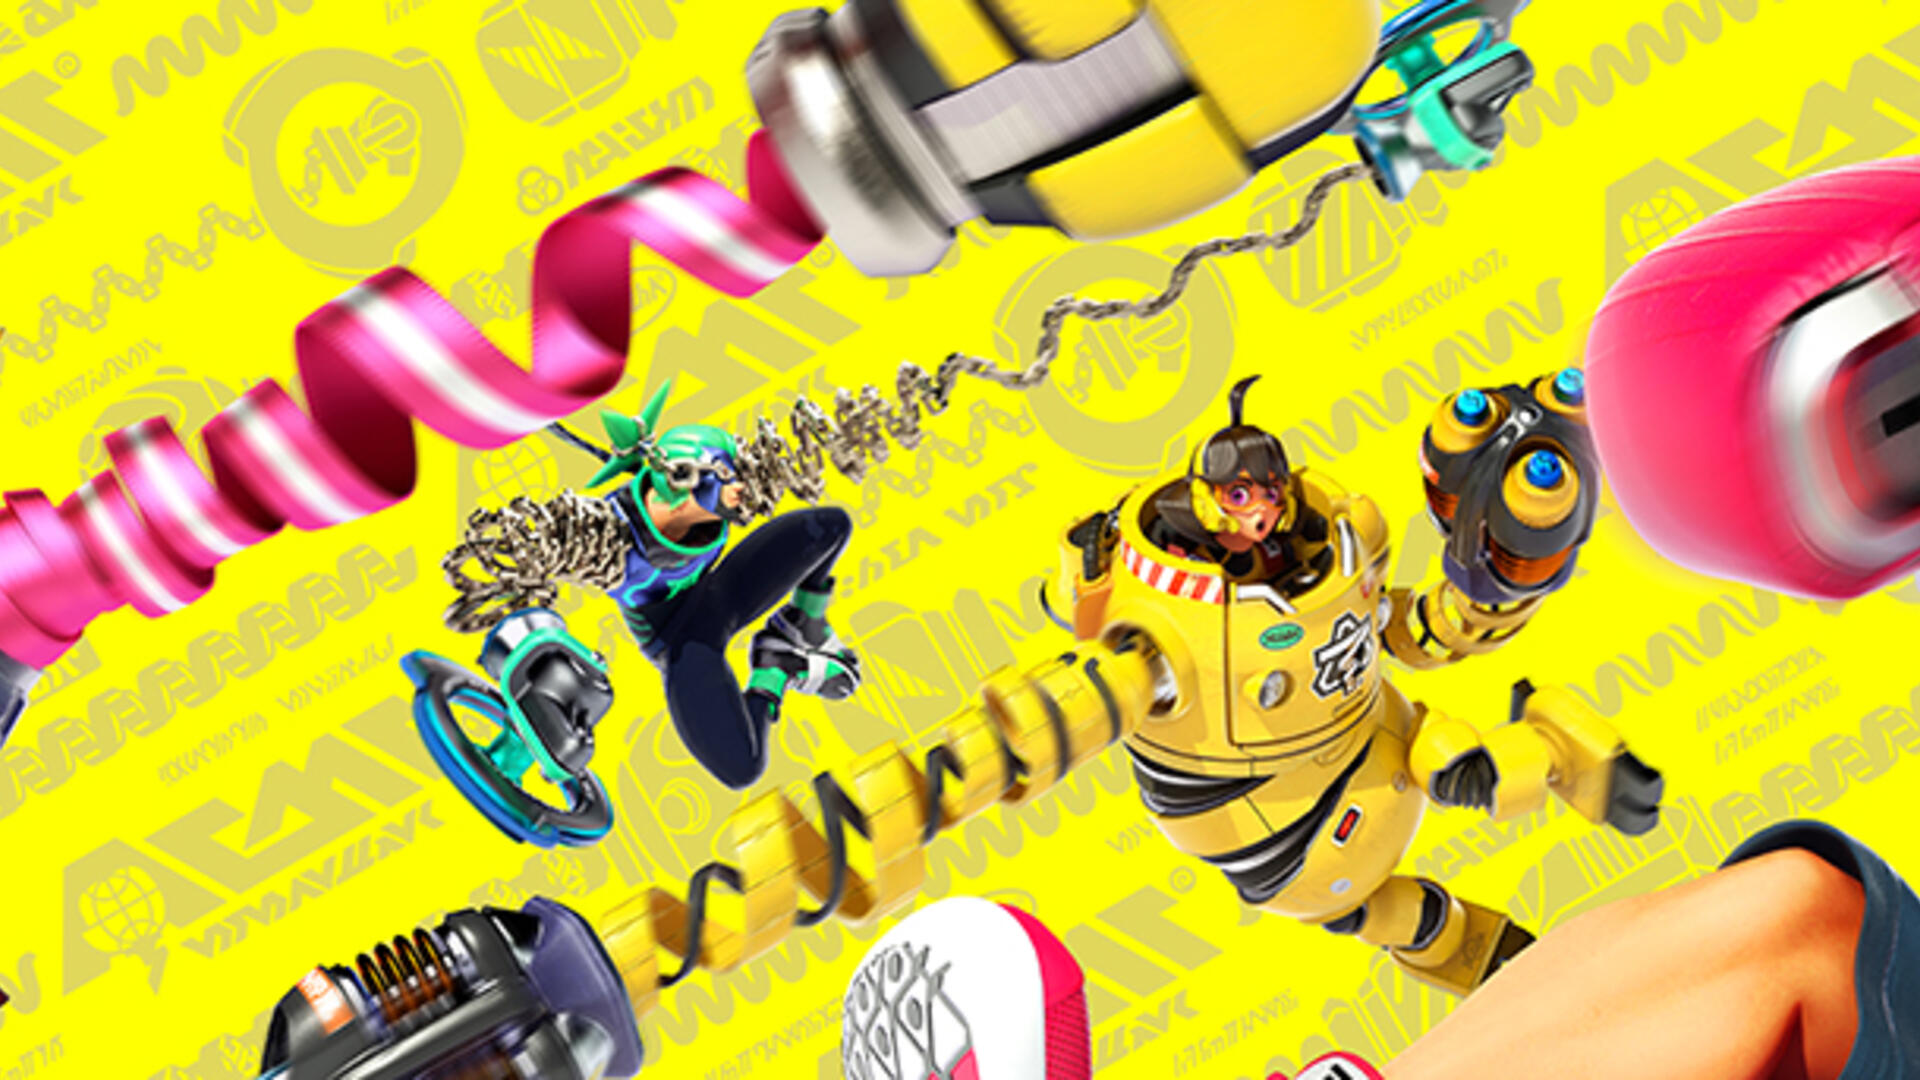 Arms Unveils New Characters, Modes, a Global Testpunch, and More in Latest Nintendo Direct